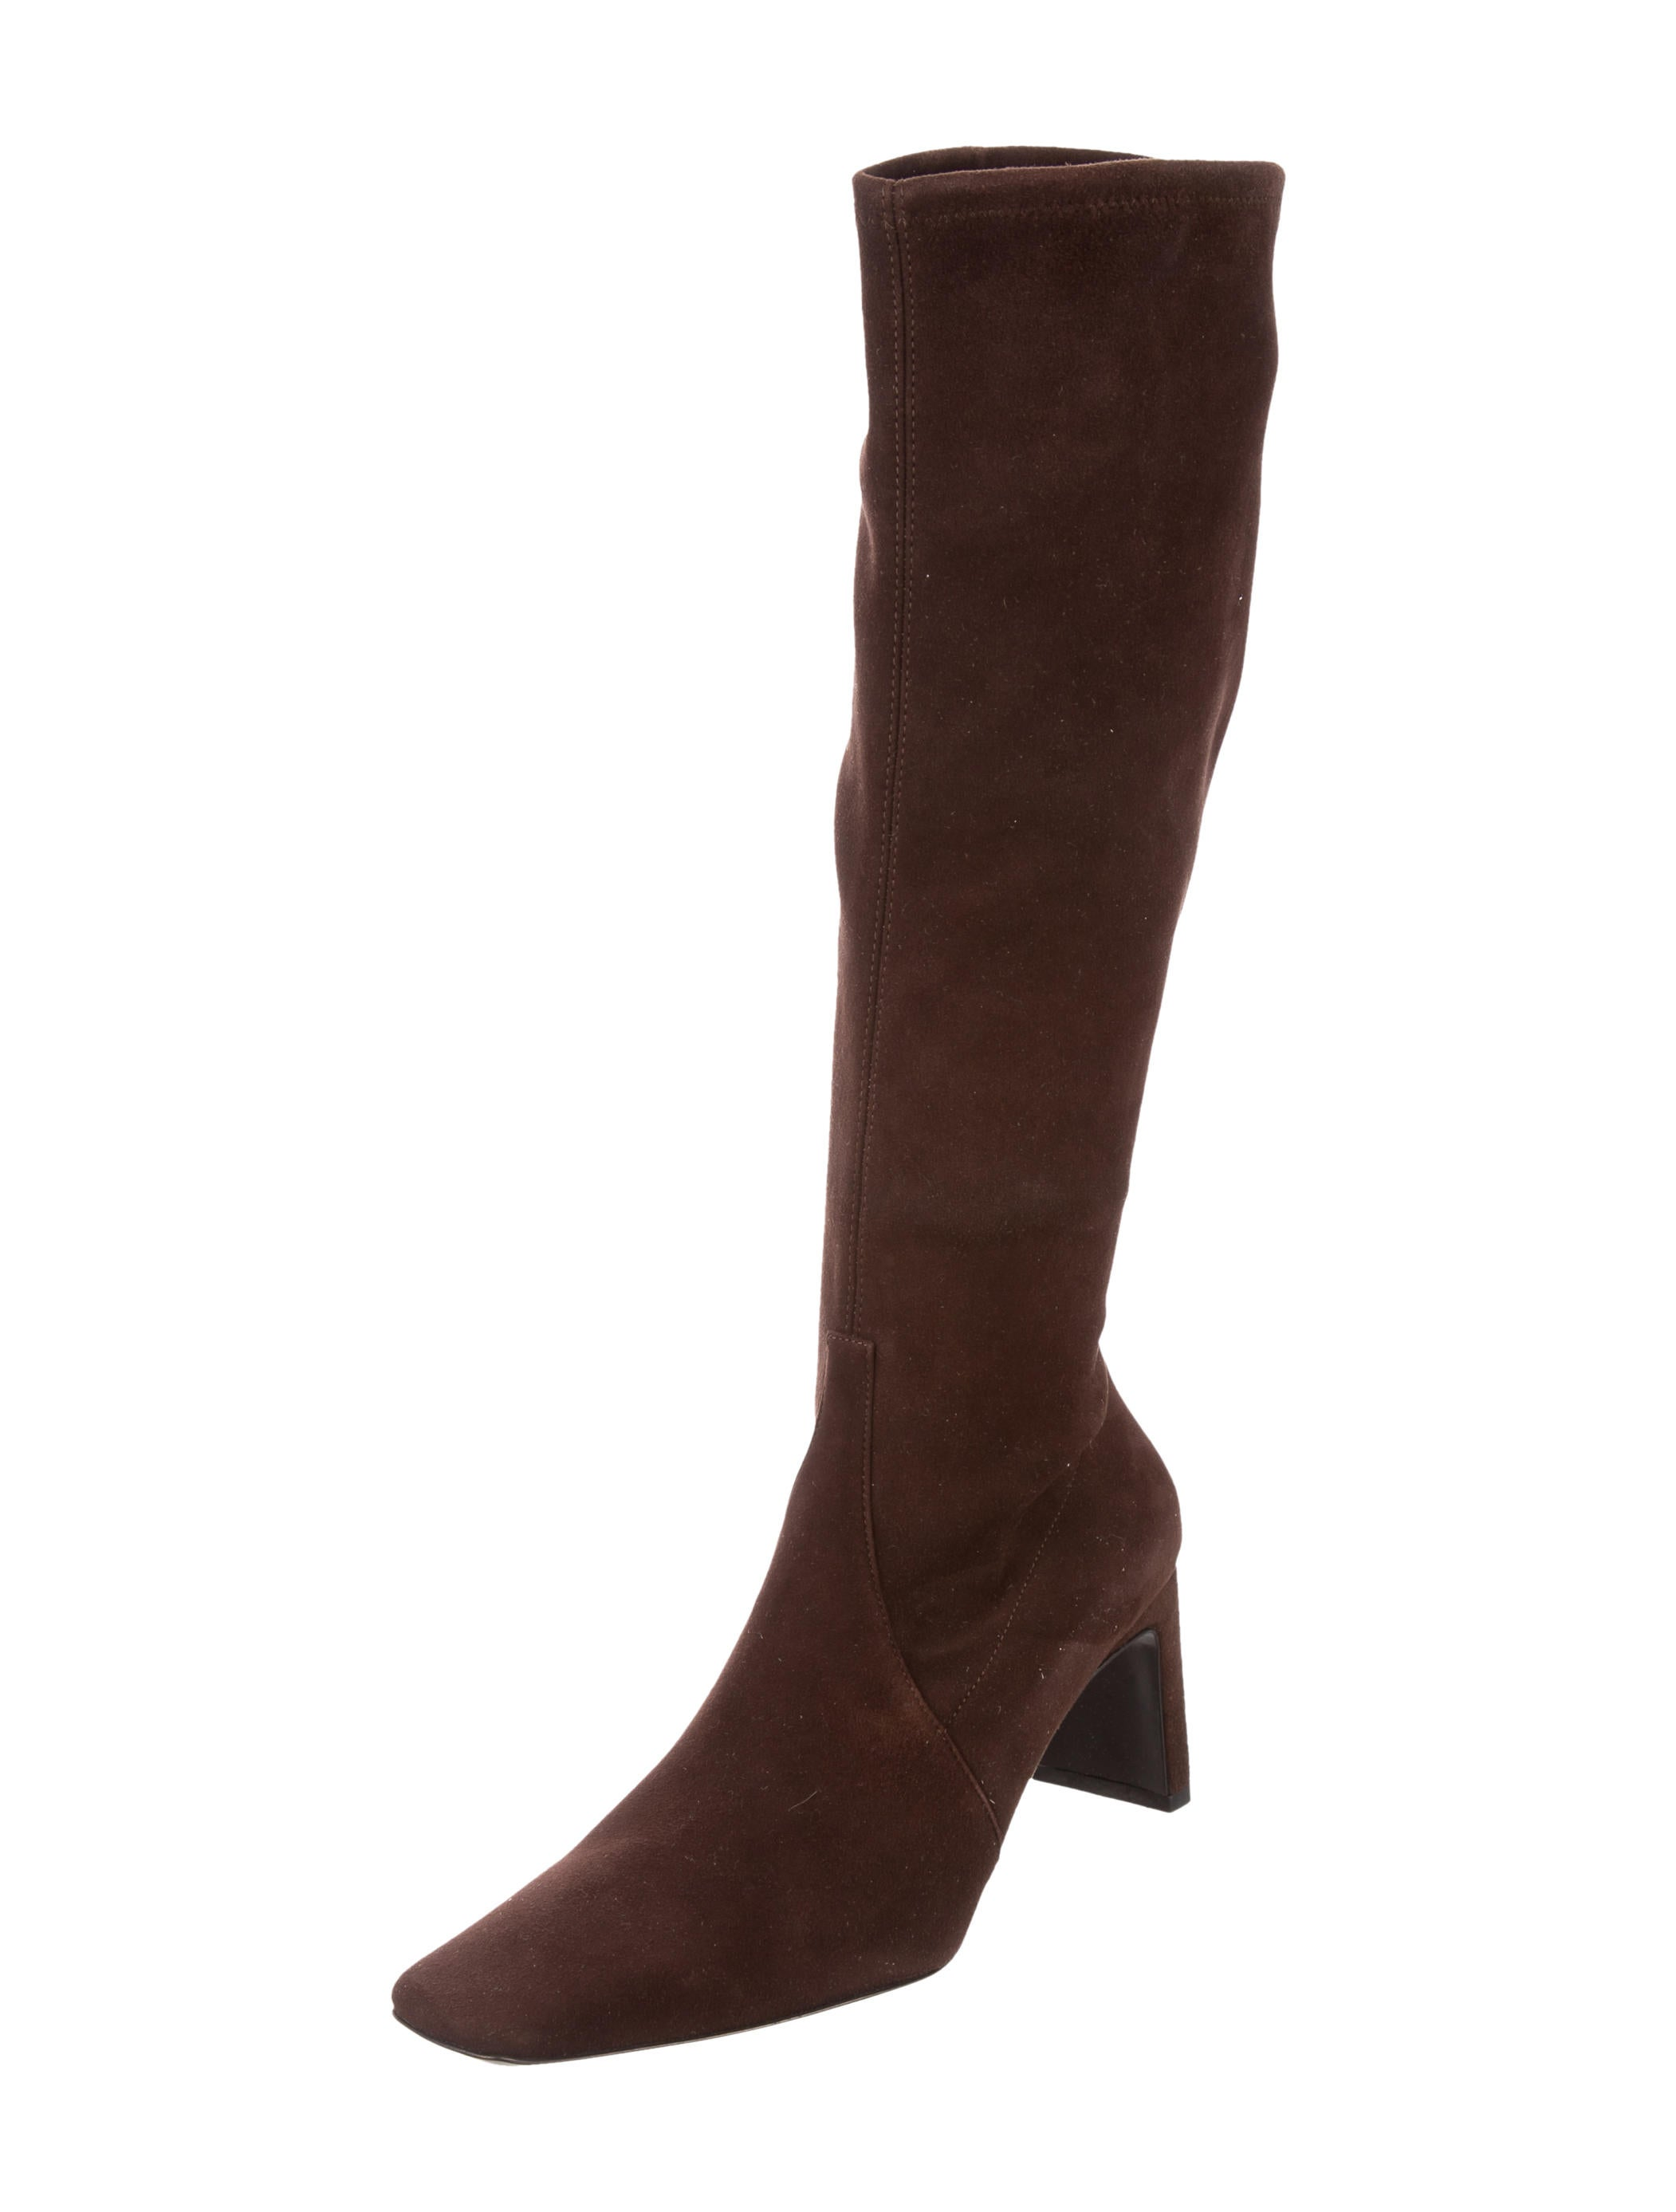 casadei mid calf suede boots shoes cei22934 the realreal